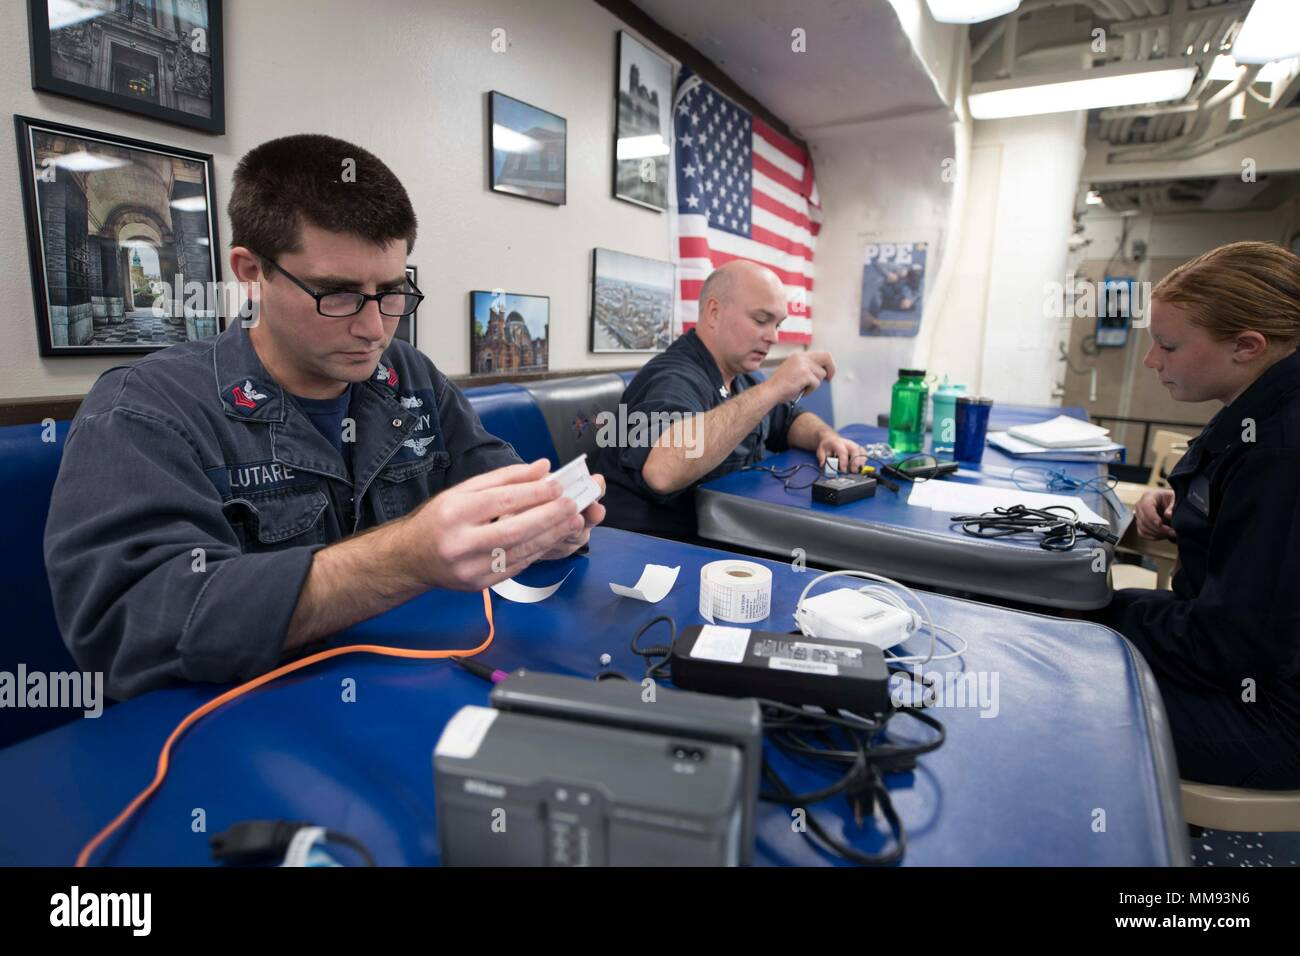 170912-N-WV703-0059 ATLANTIC OCEAN (Sept. 12, 2017) Electrician's Mate 1st Class Nicholas Salutare, from Pine Bush, New York, left, and Electrician's Mate 2nd Class Matthew Holland, from Noris Town, Pennsylvania, conduct safety checks and tagging of electrical equipment for Sailors aboard the Arleigh Burke-class guided-missile destroyer USS Winston S. Churchill (DDG 81) Sept. 12, 2017. Winston S. Churchill, homeported at Naval Station Norfolk, is conducting naval operations in the U.S. 6th Fleet area of operations in support of U.S. national security interests in Europe. (U.S. Navy photo by Ma Stock Photo